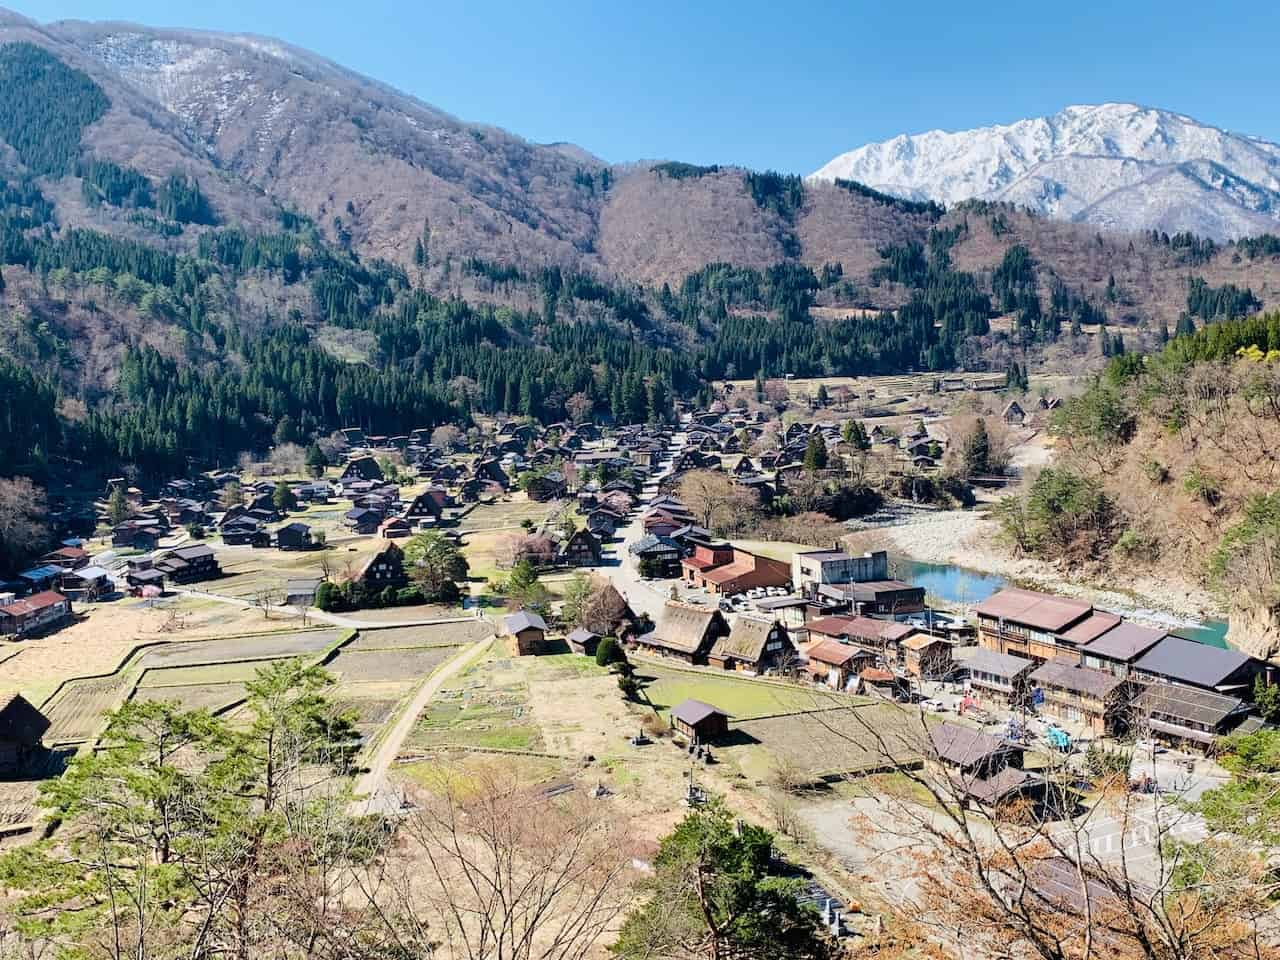 Shirakawago Viewpoint